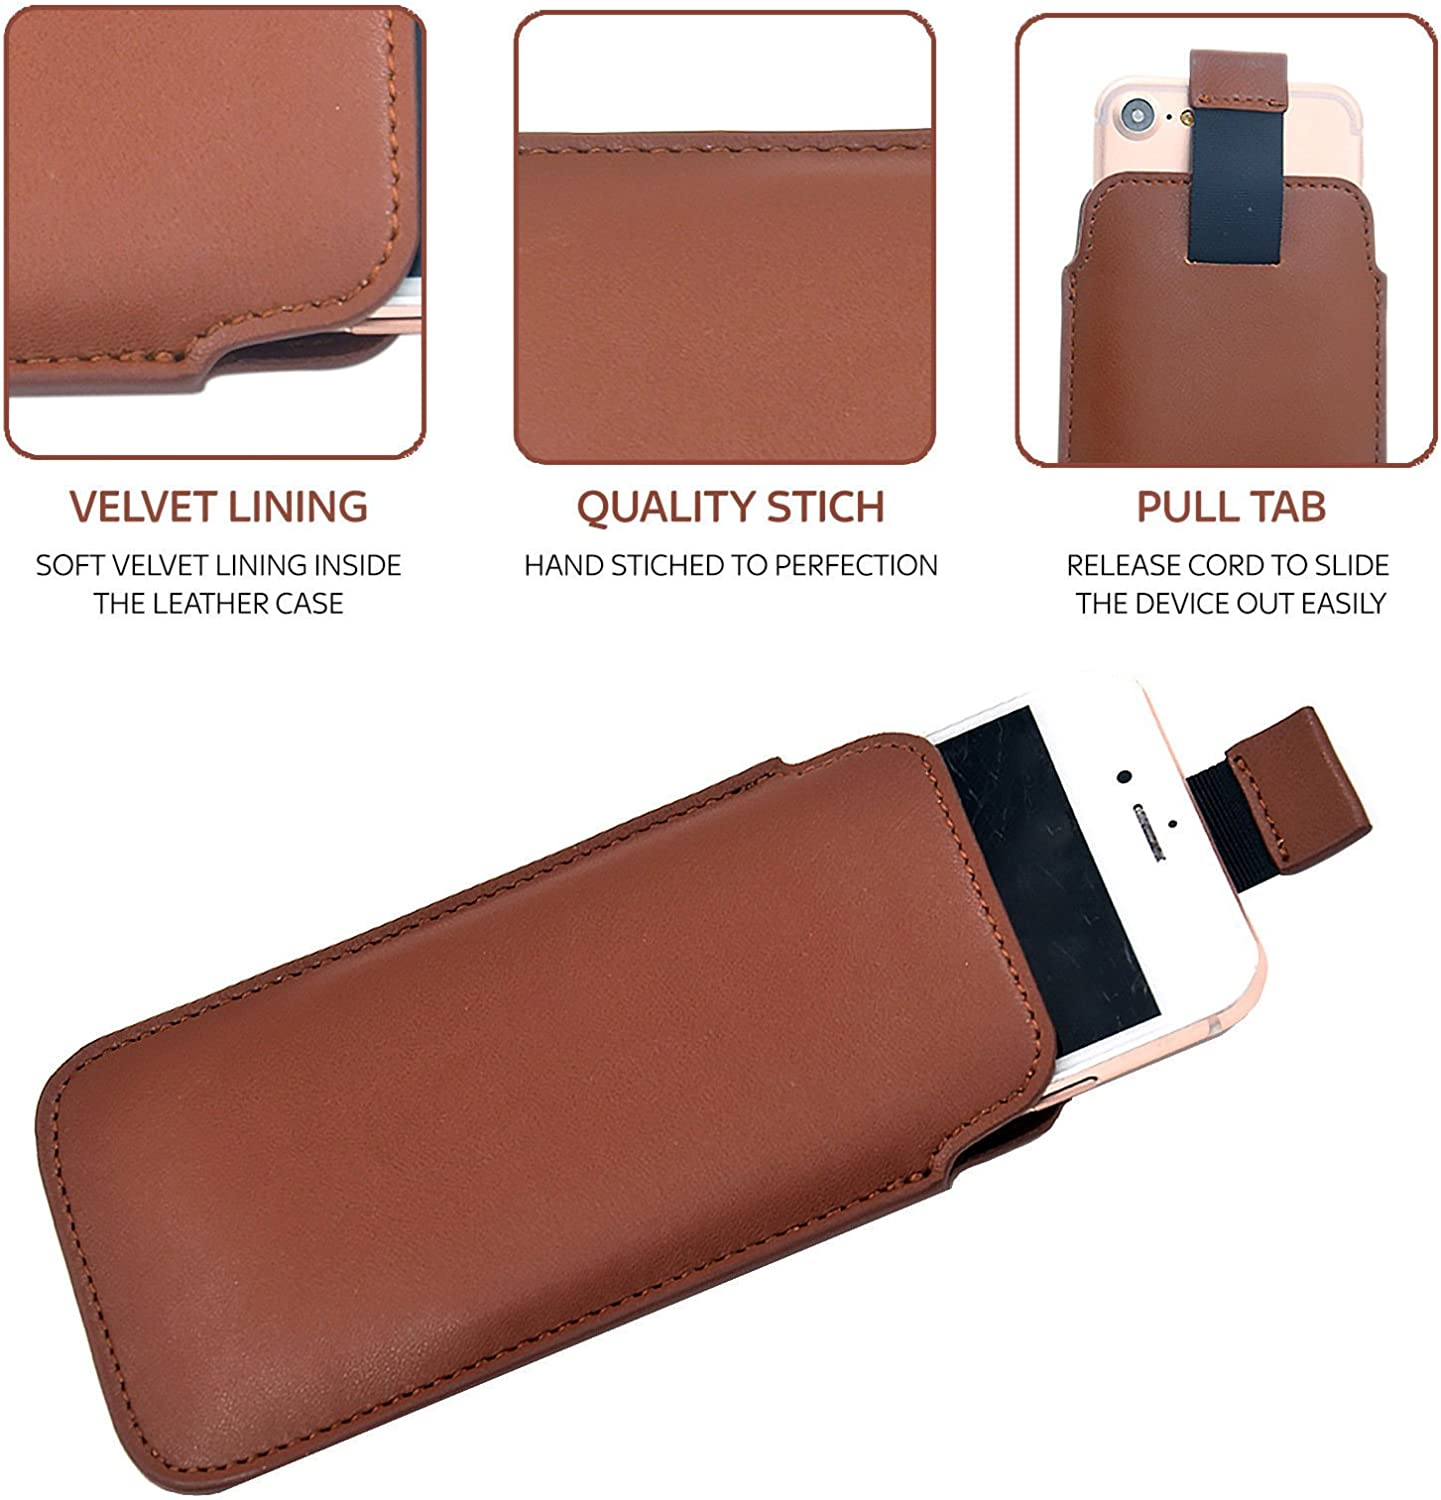 Black DOT For Sony Xperia XZ1 Slim Real Genuine Soft Leather Pull Tab Slide In Pouch Sleeve Case Cover